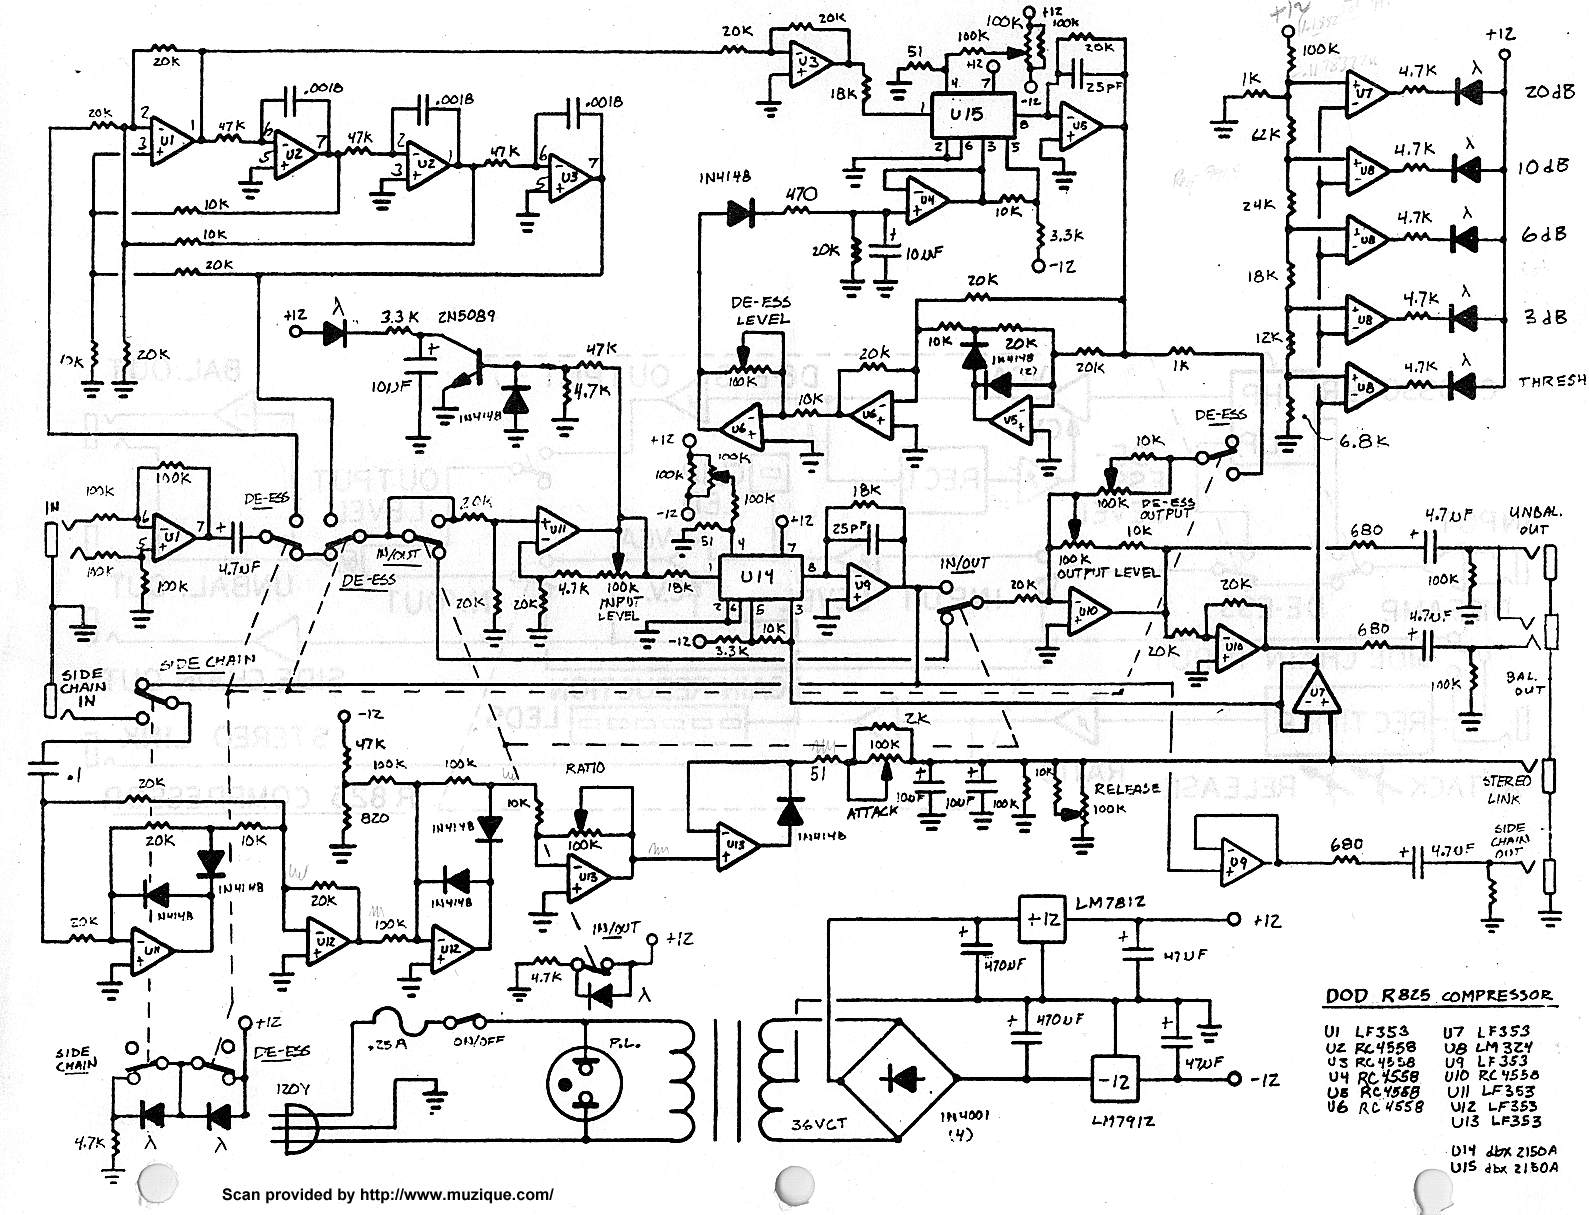 king of tone circuit schematic